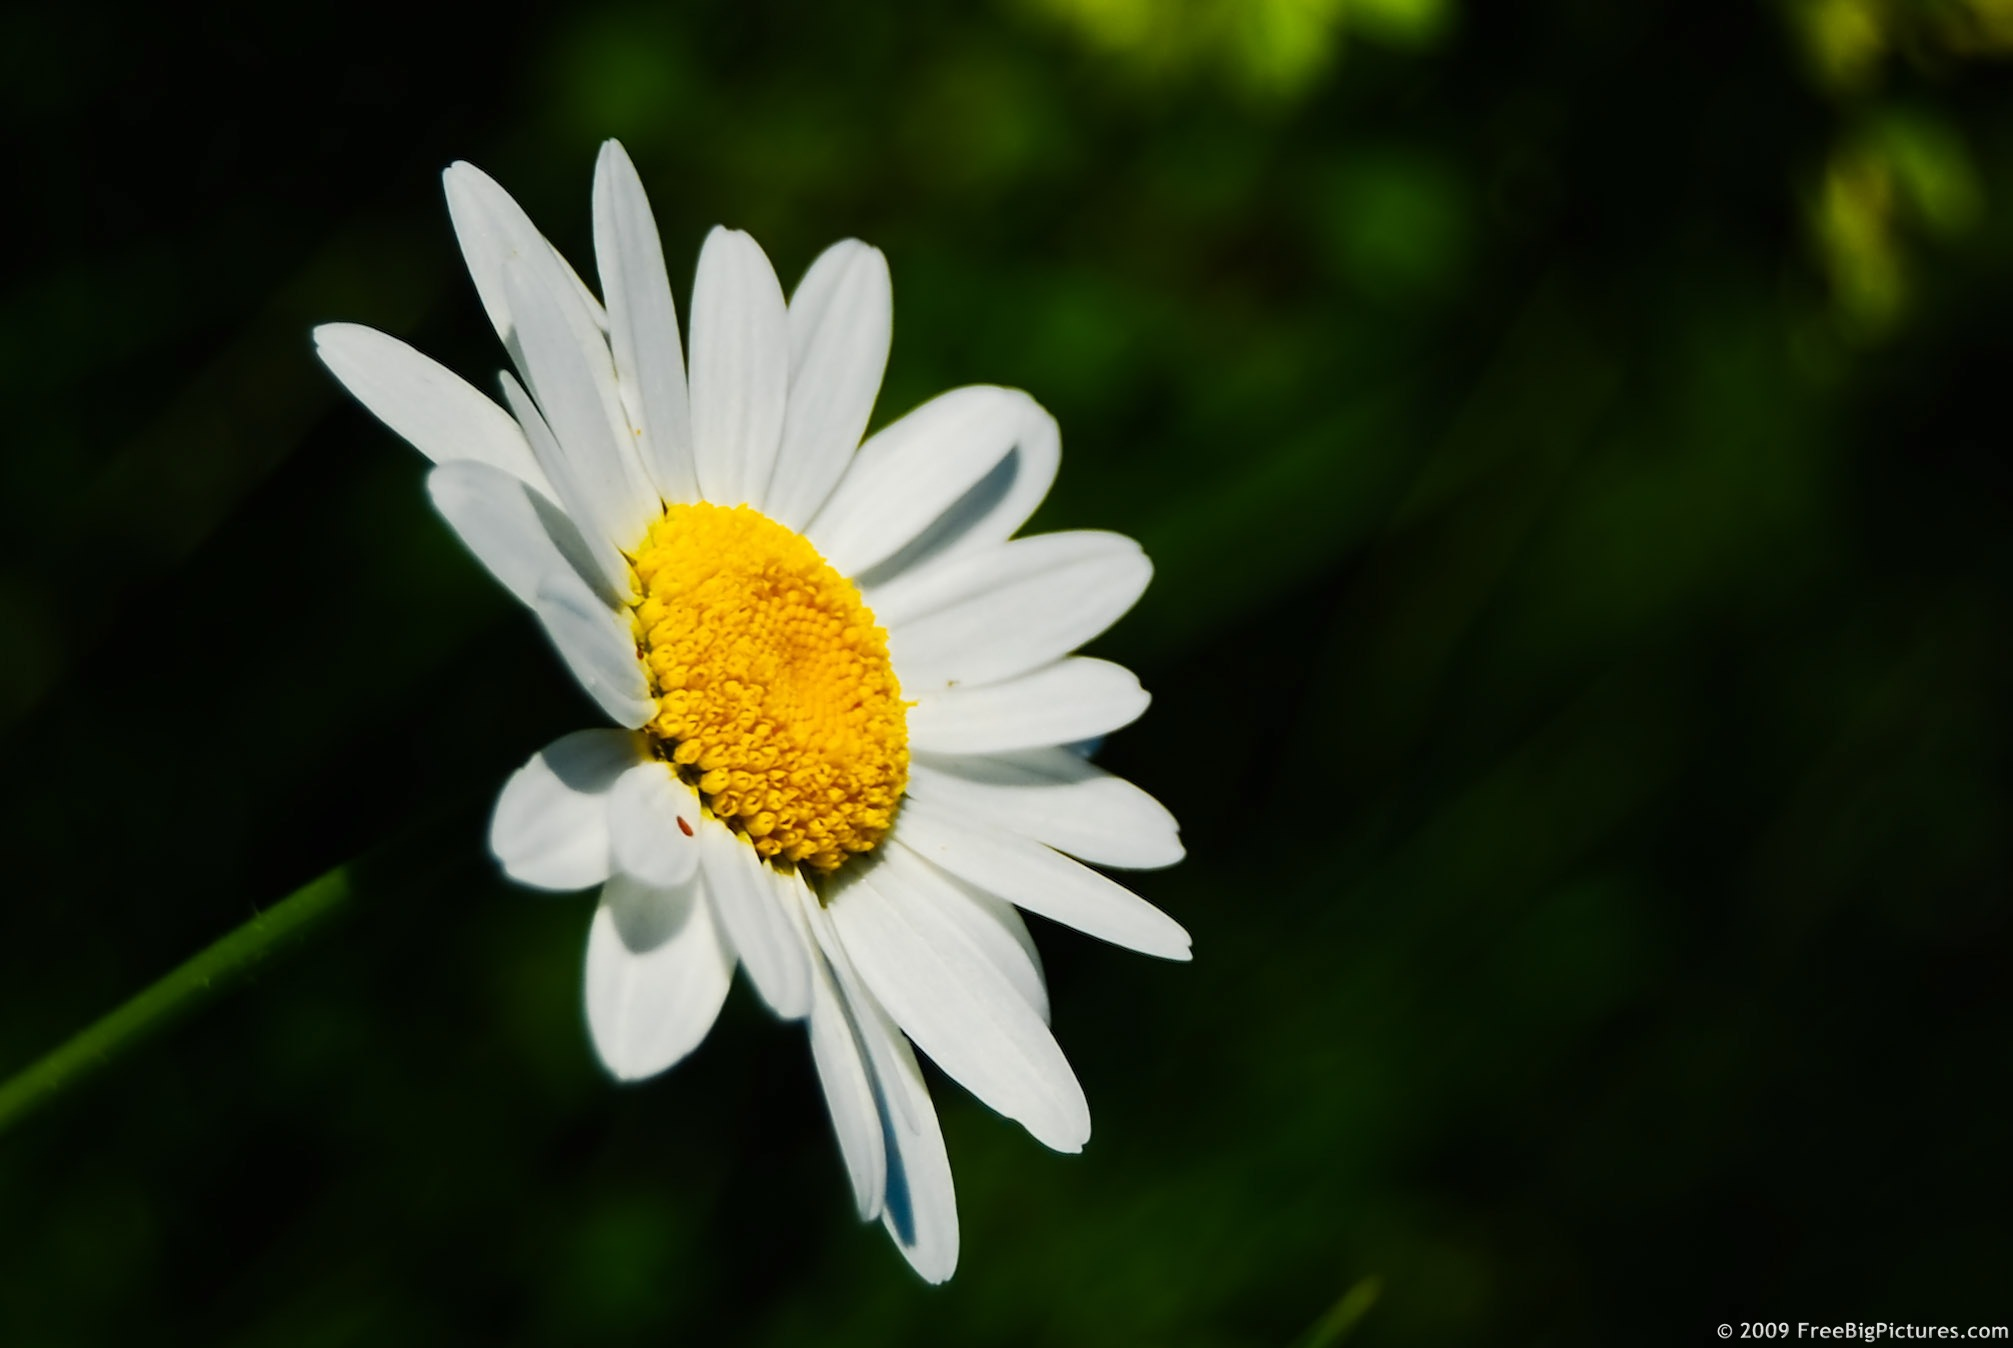 free big daisy pictures  high resolution images, Beautiful flower